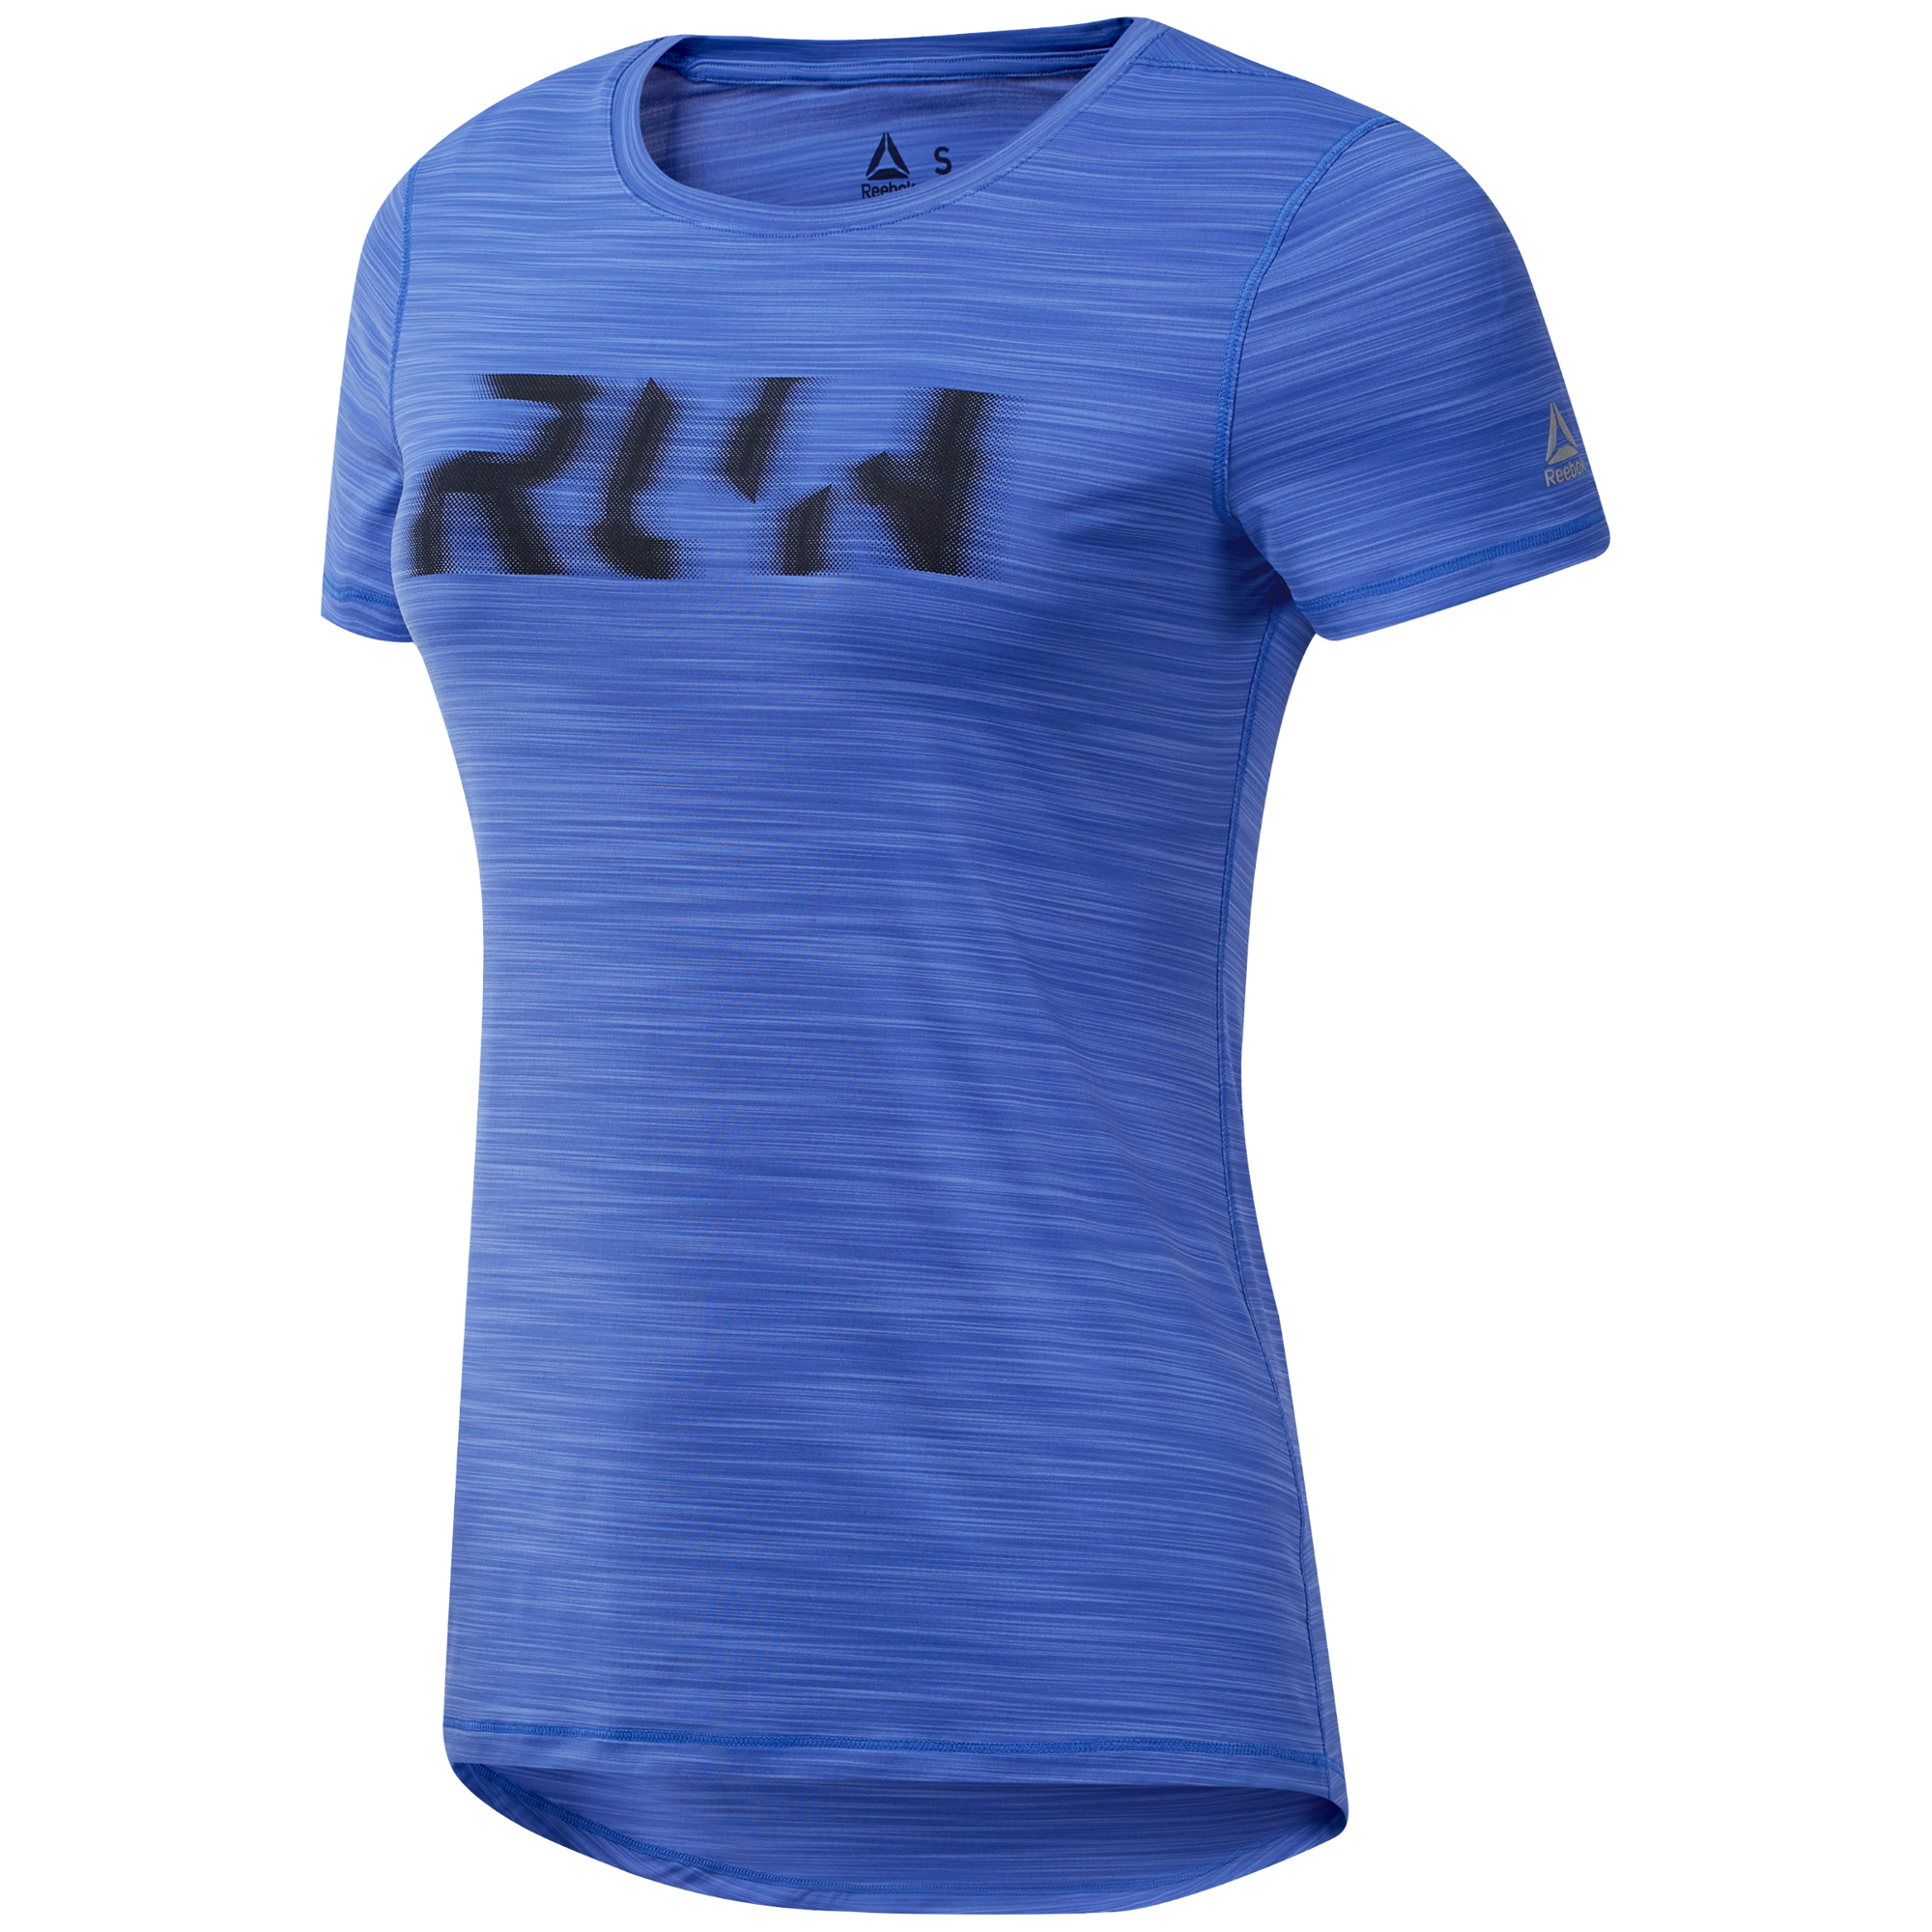 Reebok Women's Activchill Graphic Tee | Jerseys